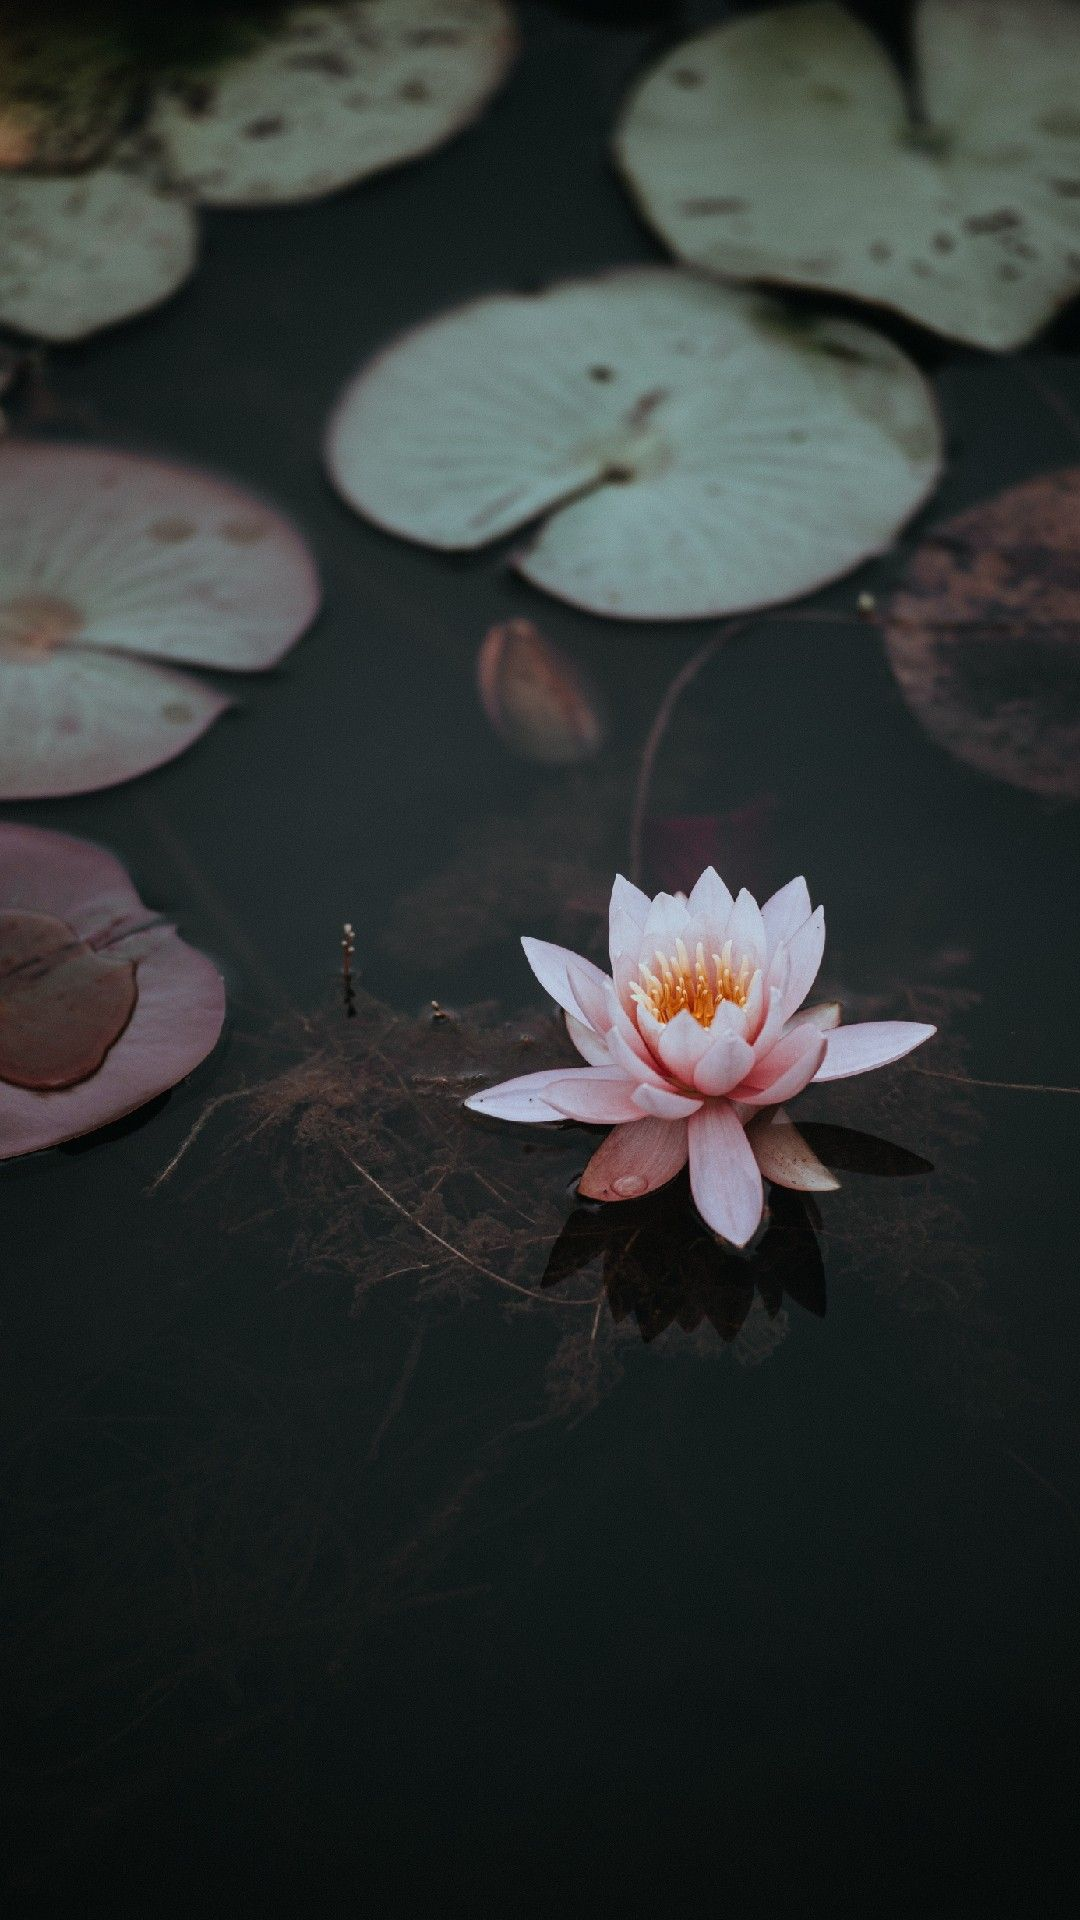 Lotus flower pictures ...